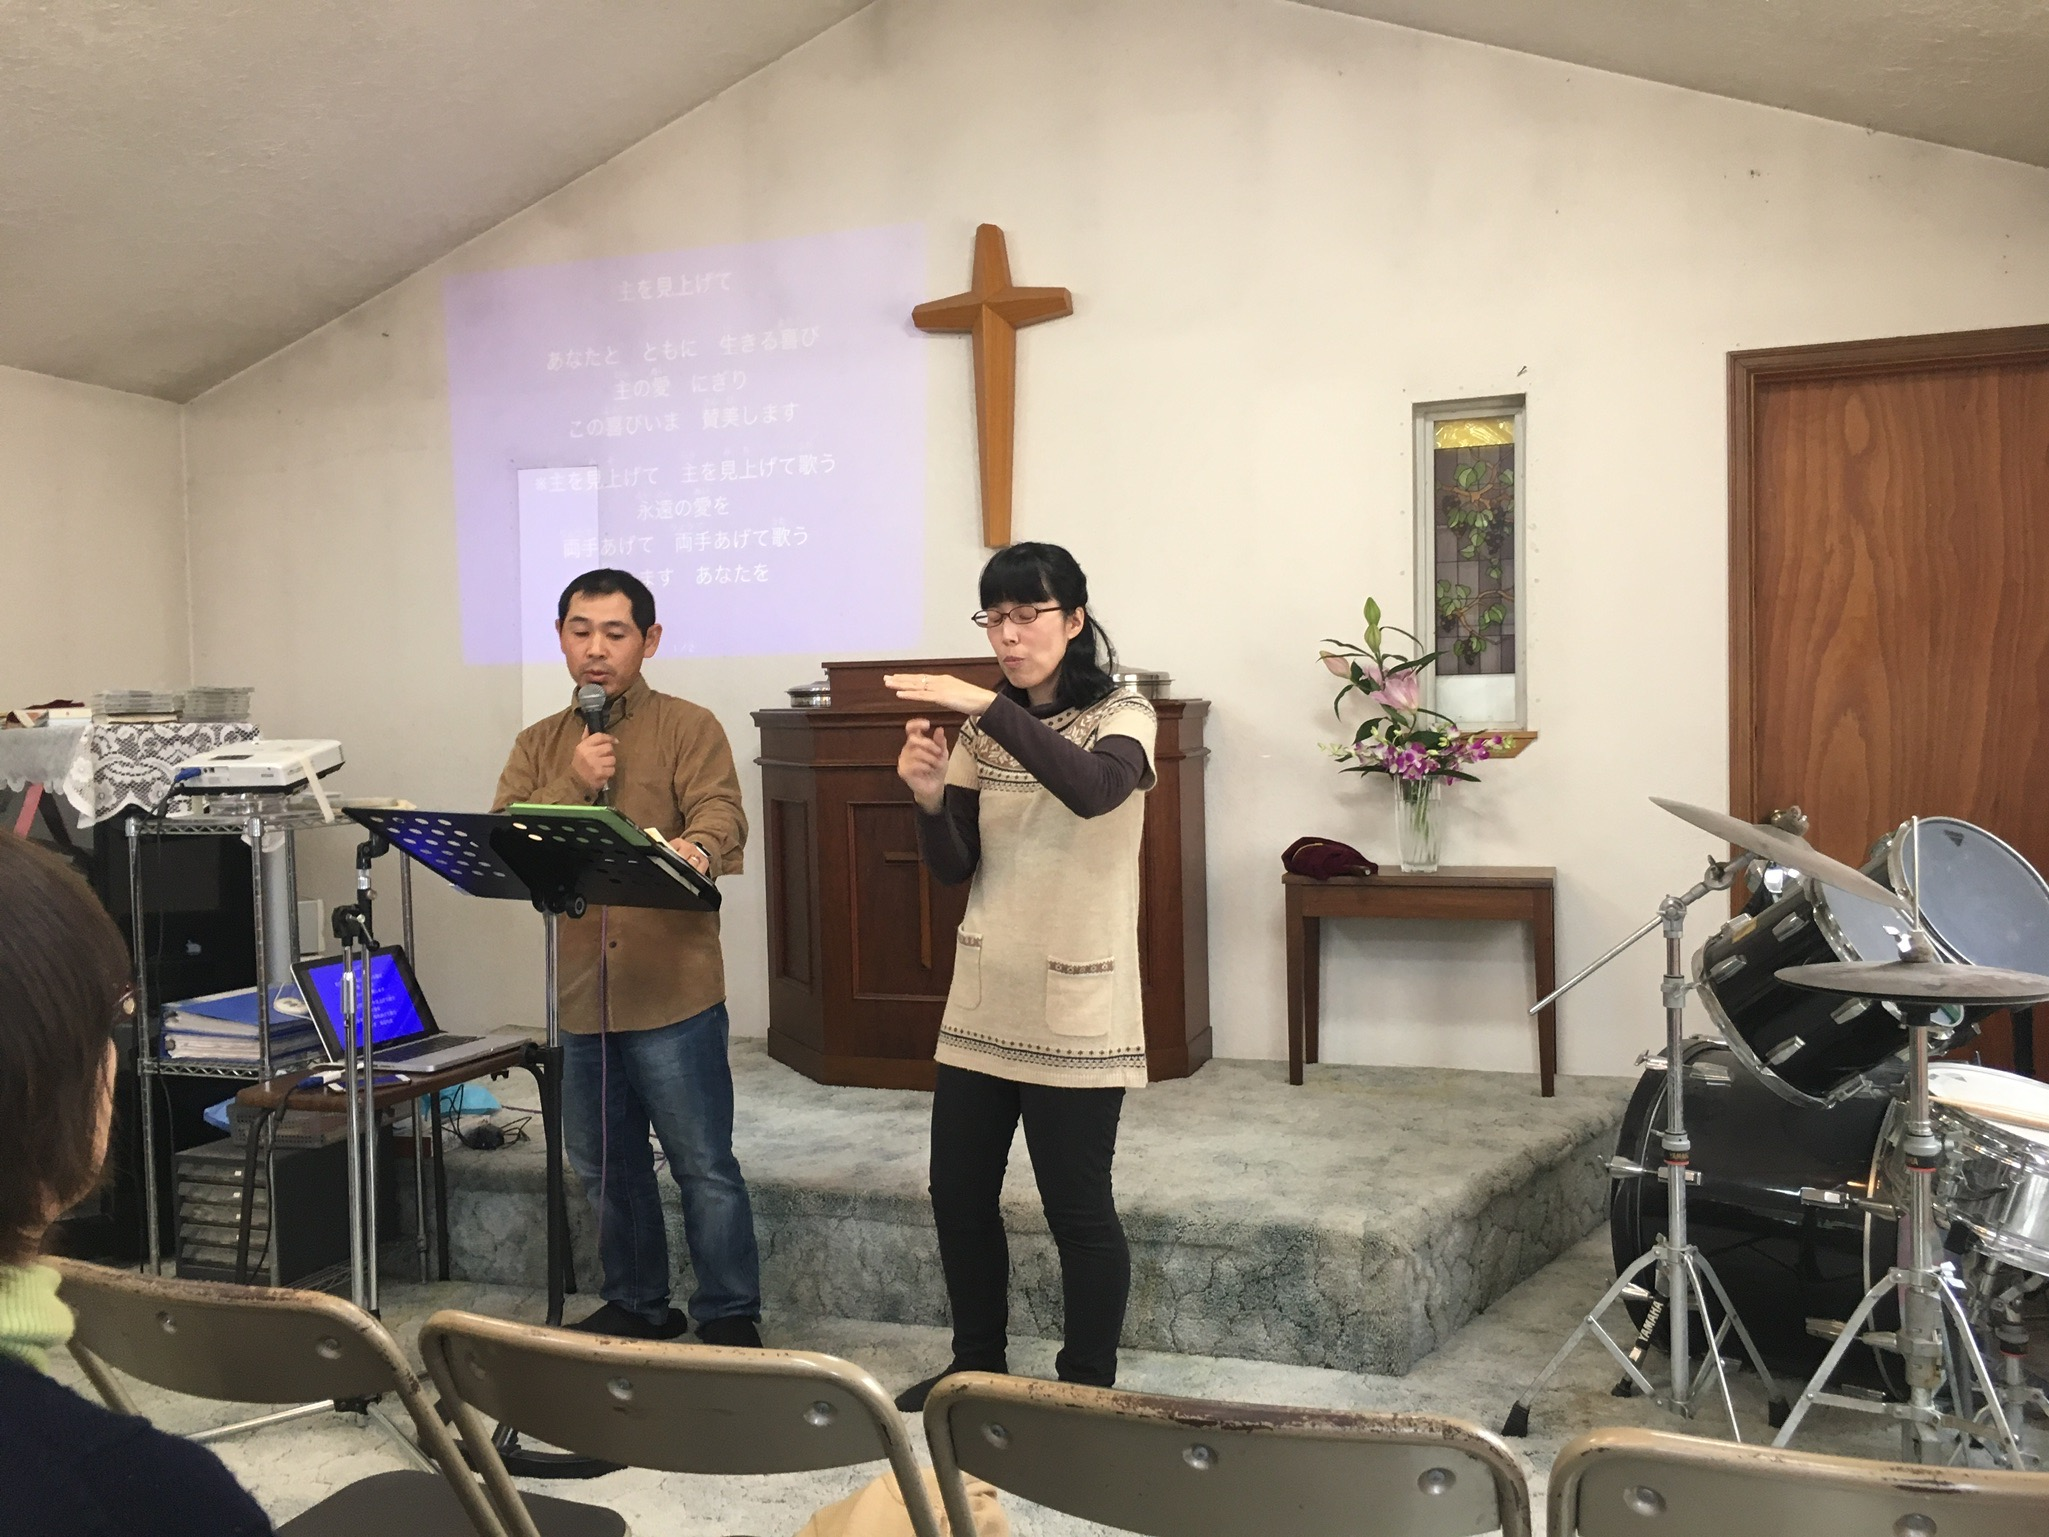 Pastor Shuzo Ito and his wife. She translates everything into sign language. This congregation meets on the second story of a two-story chapel. We loved the spirit of this church.